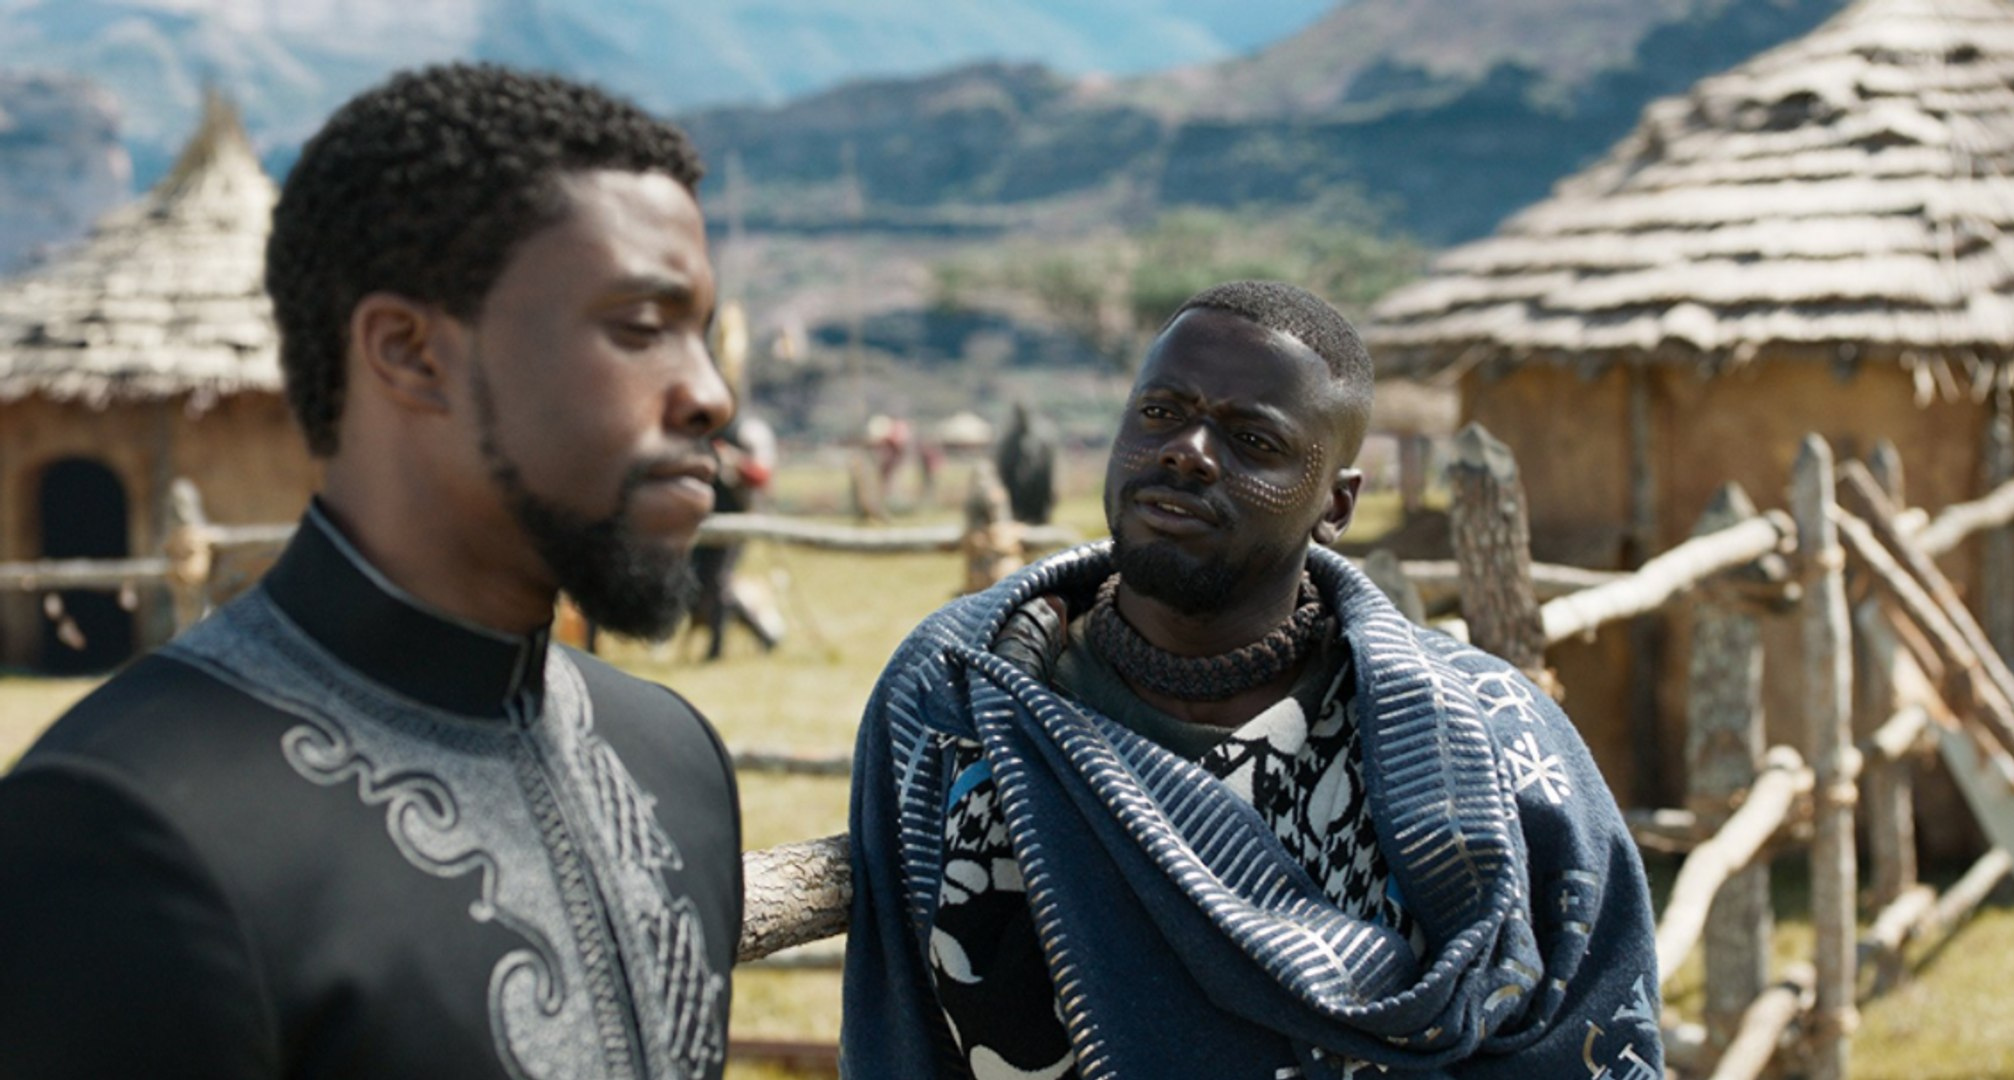 Original Movie Black Panther Full Movie Streaming (2018)